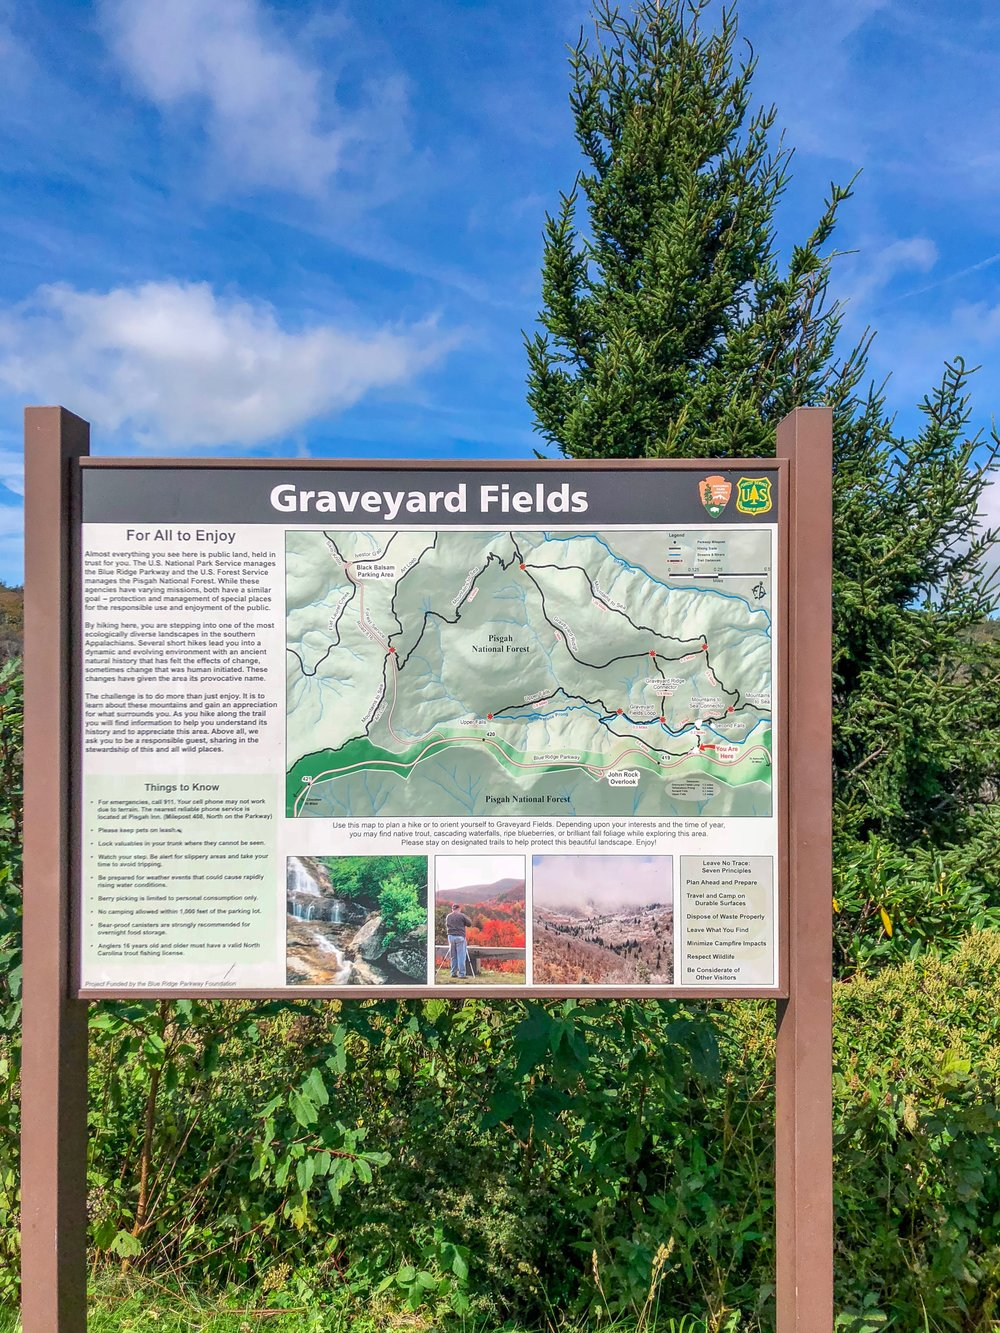 Graveyard Fields Trail Head Map